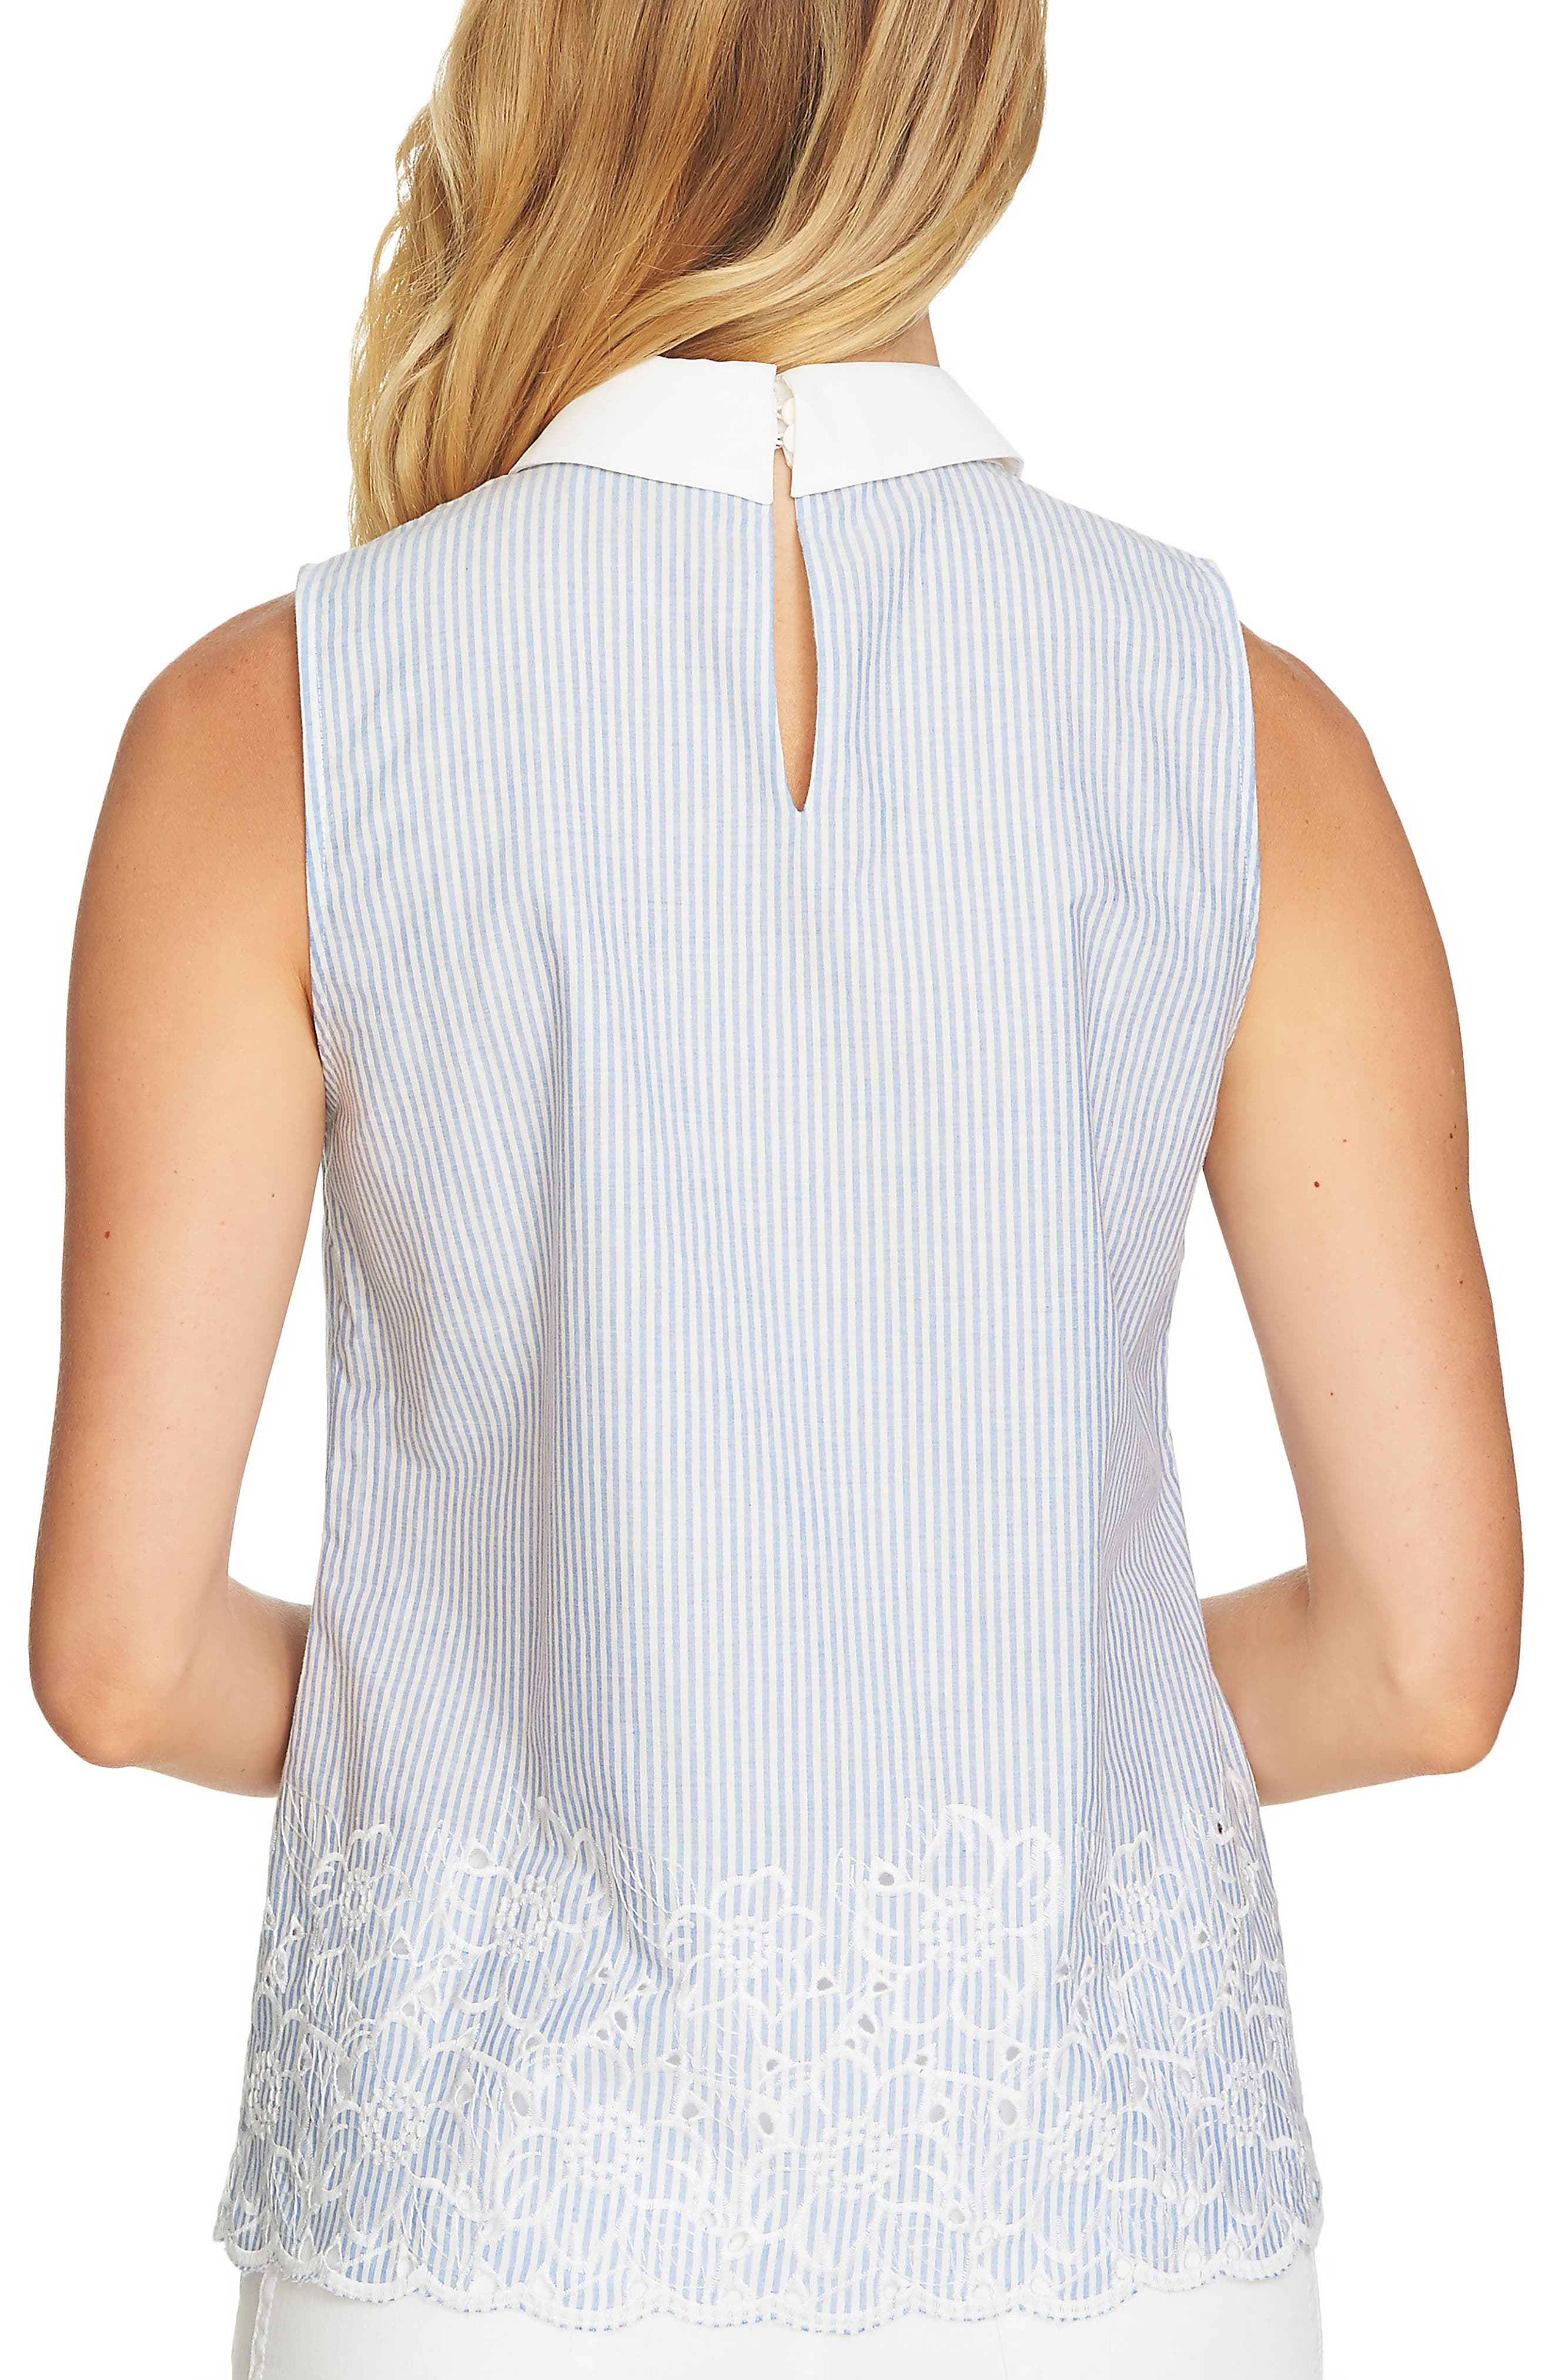 Yarn Dyed Collared Sleeveless Blouse,                             Alternate thumbnail 2, color,                             430